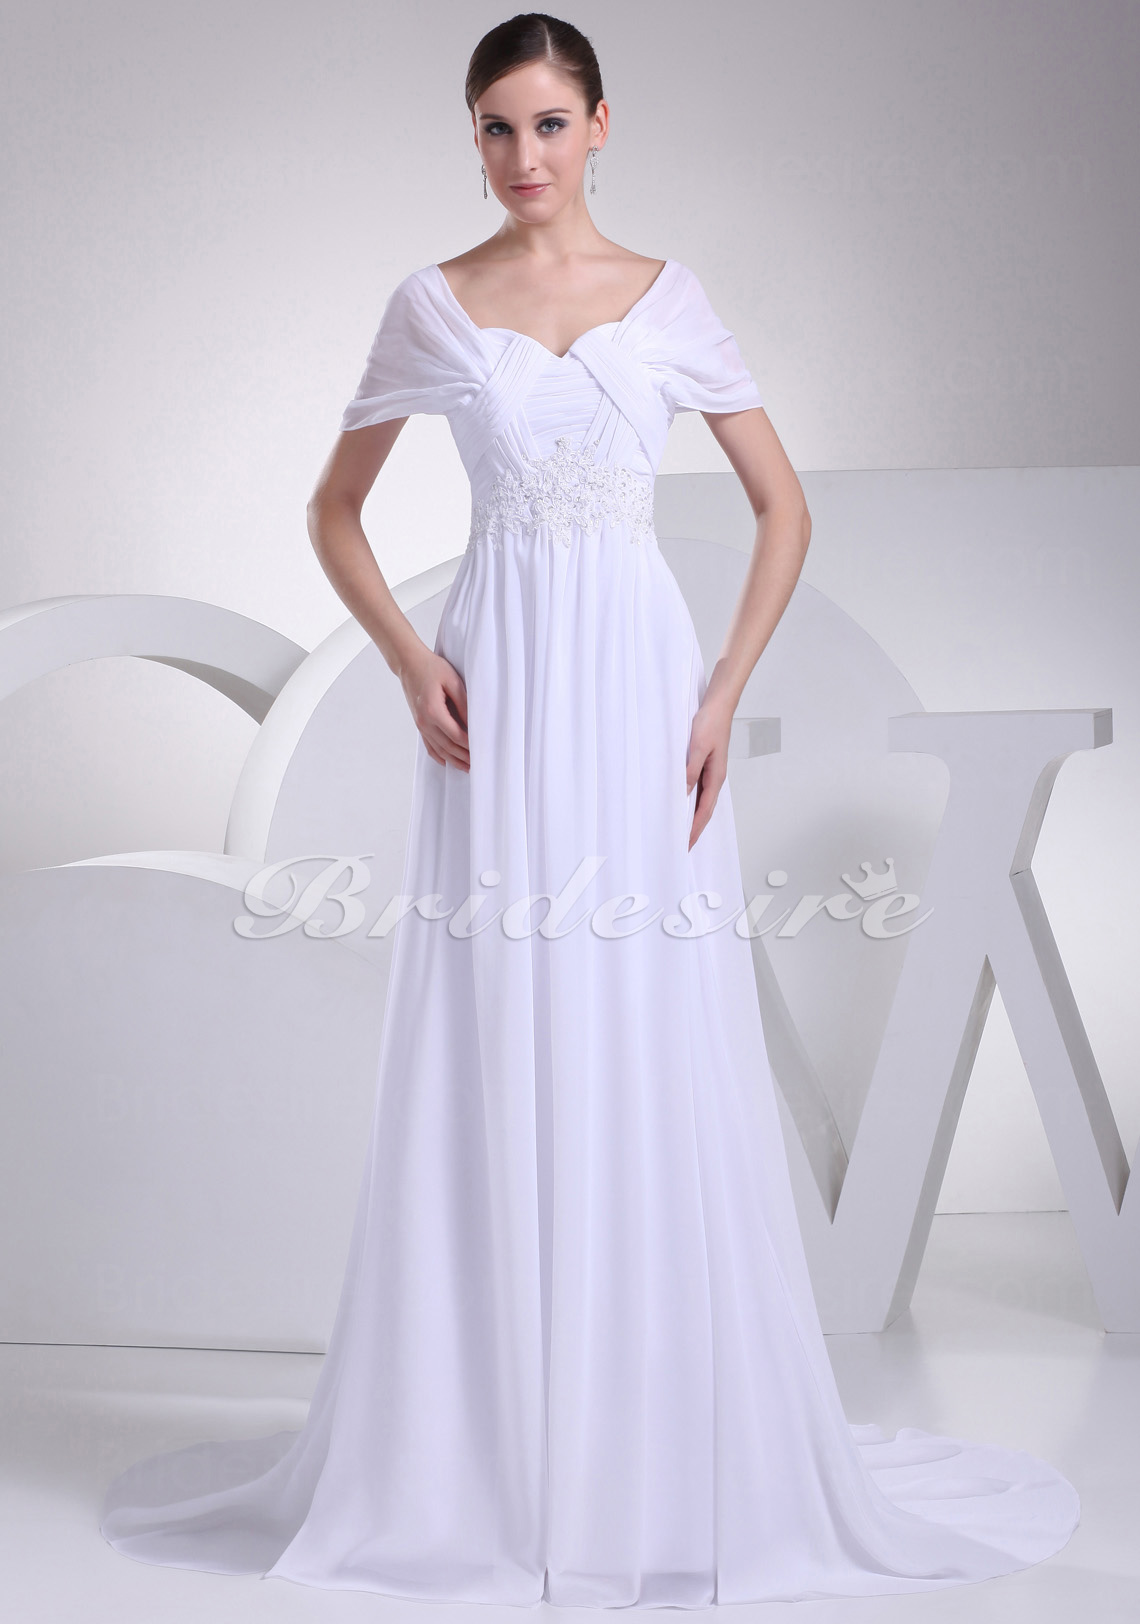 A-line Off-the-shoulder Sweetheart Sweep Train Short Sleeve Chiffon Wedding Dress